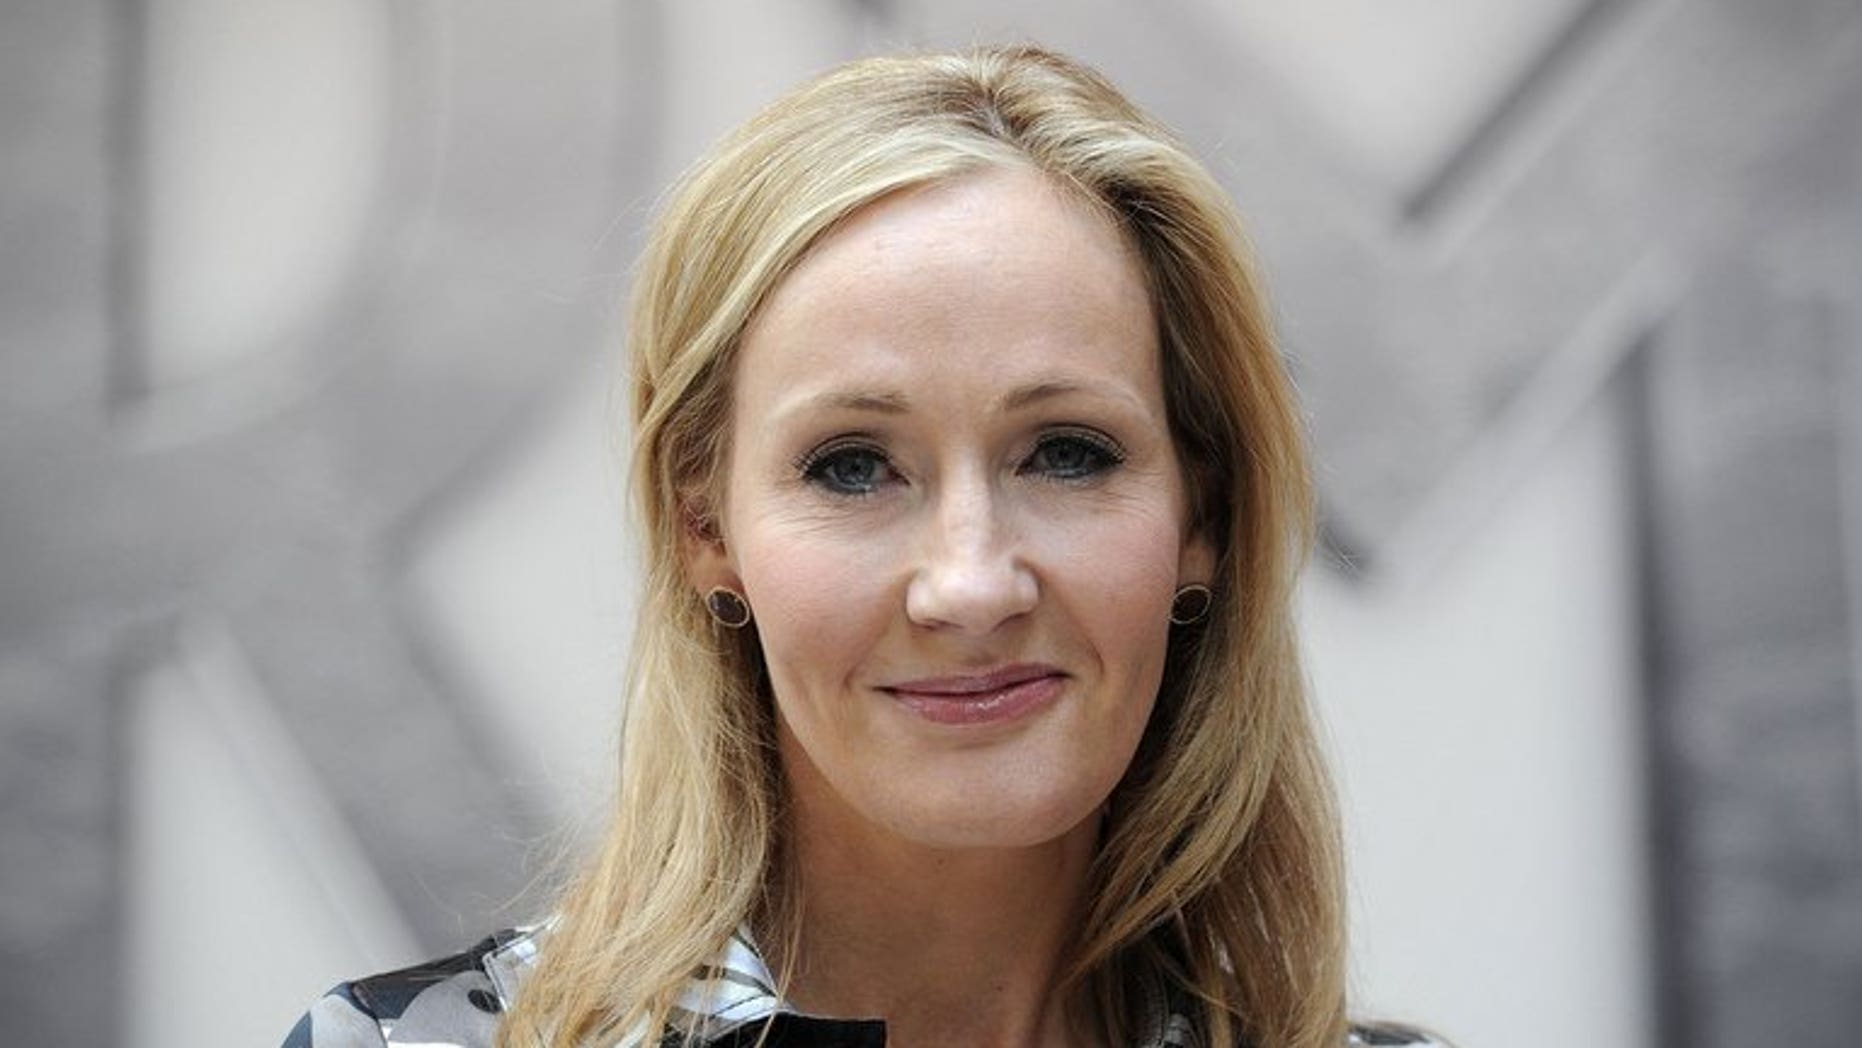 Harry Potter author J. K. Rowling pictured in London on June 23, 2011. J.K. Rowling spent a whole weekend practising a fake signature for her crime-writing alter-ego Robert Galbraith, she revealed Wednesday.